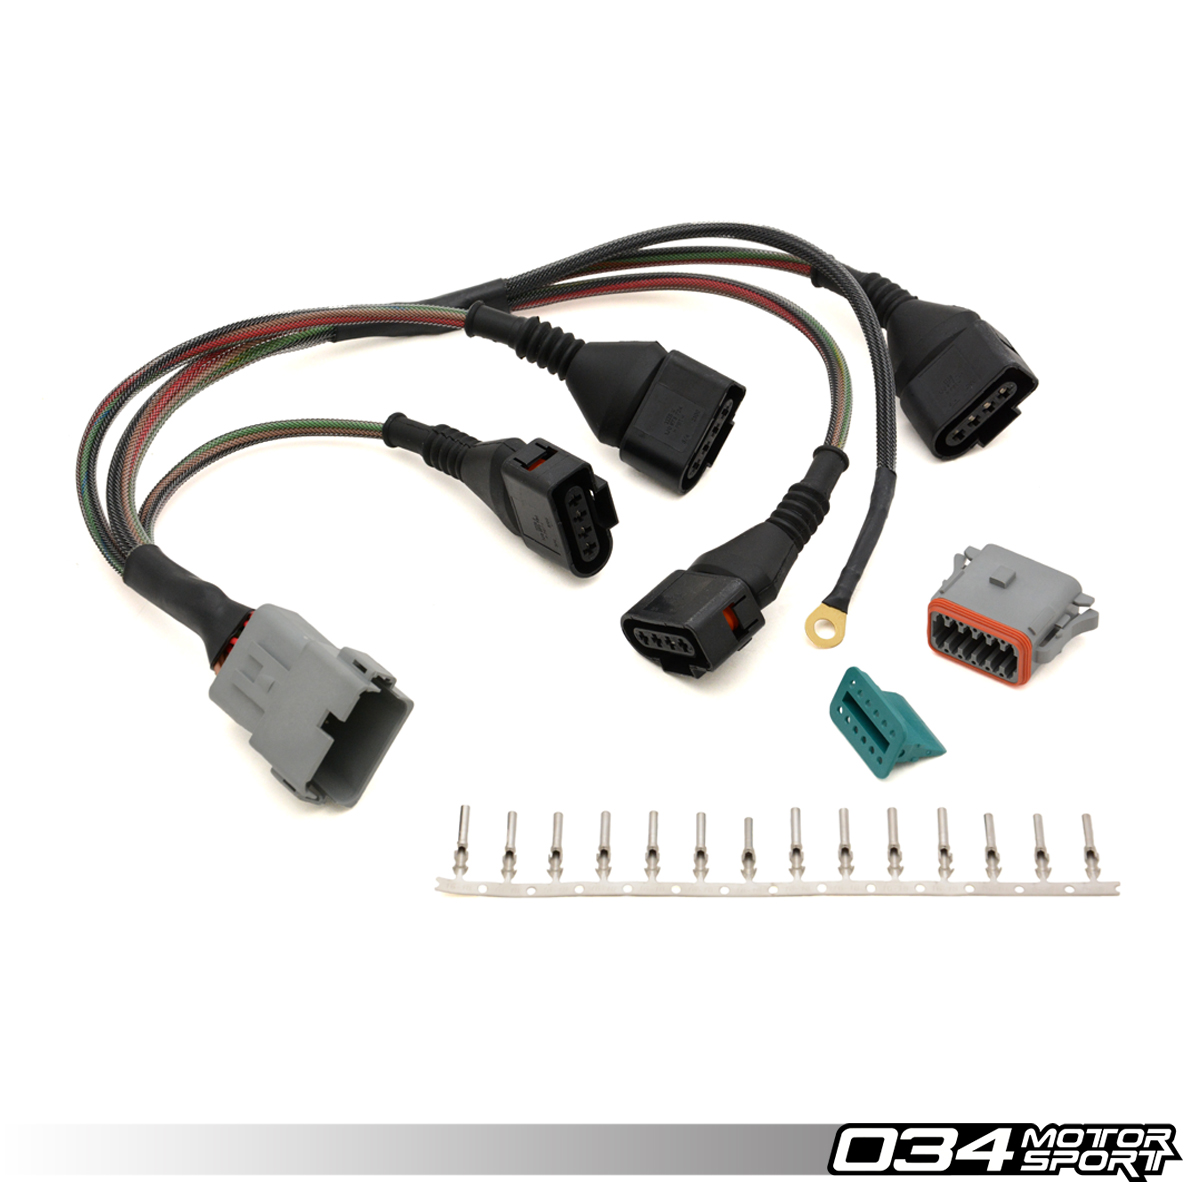 repair update harness audi volkswagen 18t with 4 wire coils 034motorsport 034 701 0004 2 repair update harness, audi volkswagen 1 8t with 4 wire coils vw wiring harness at crackthecode.co